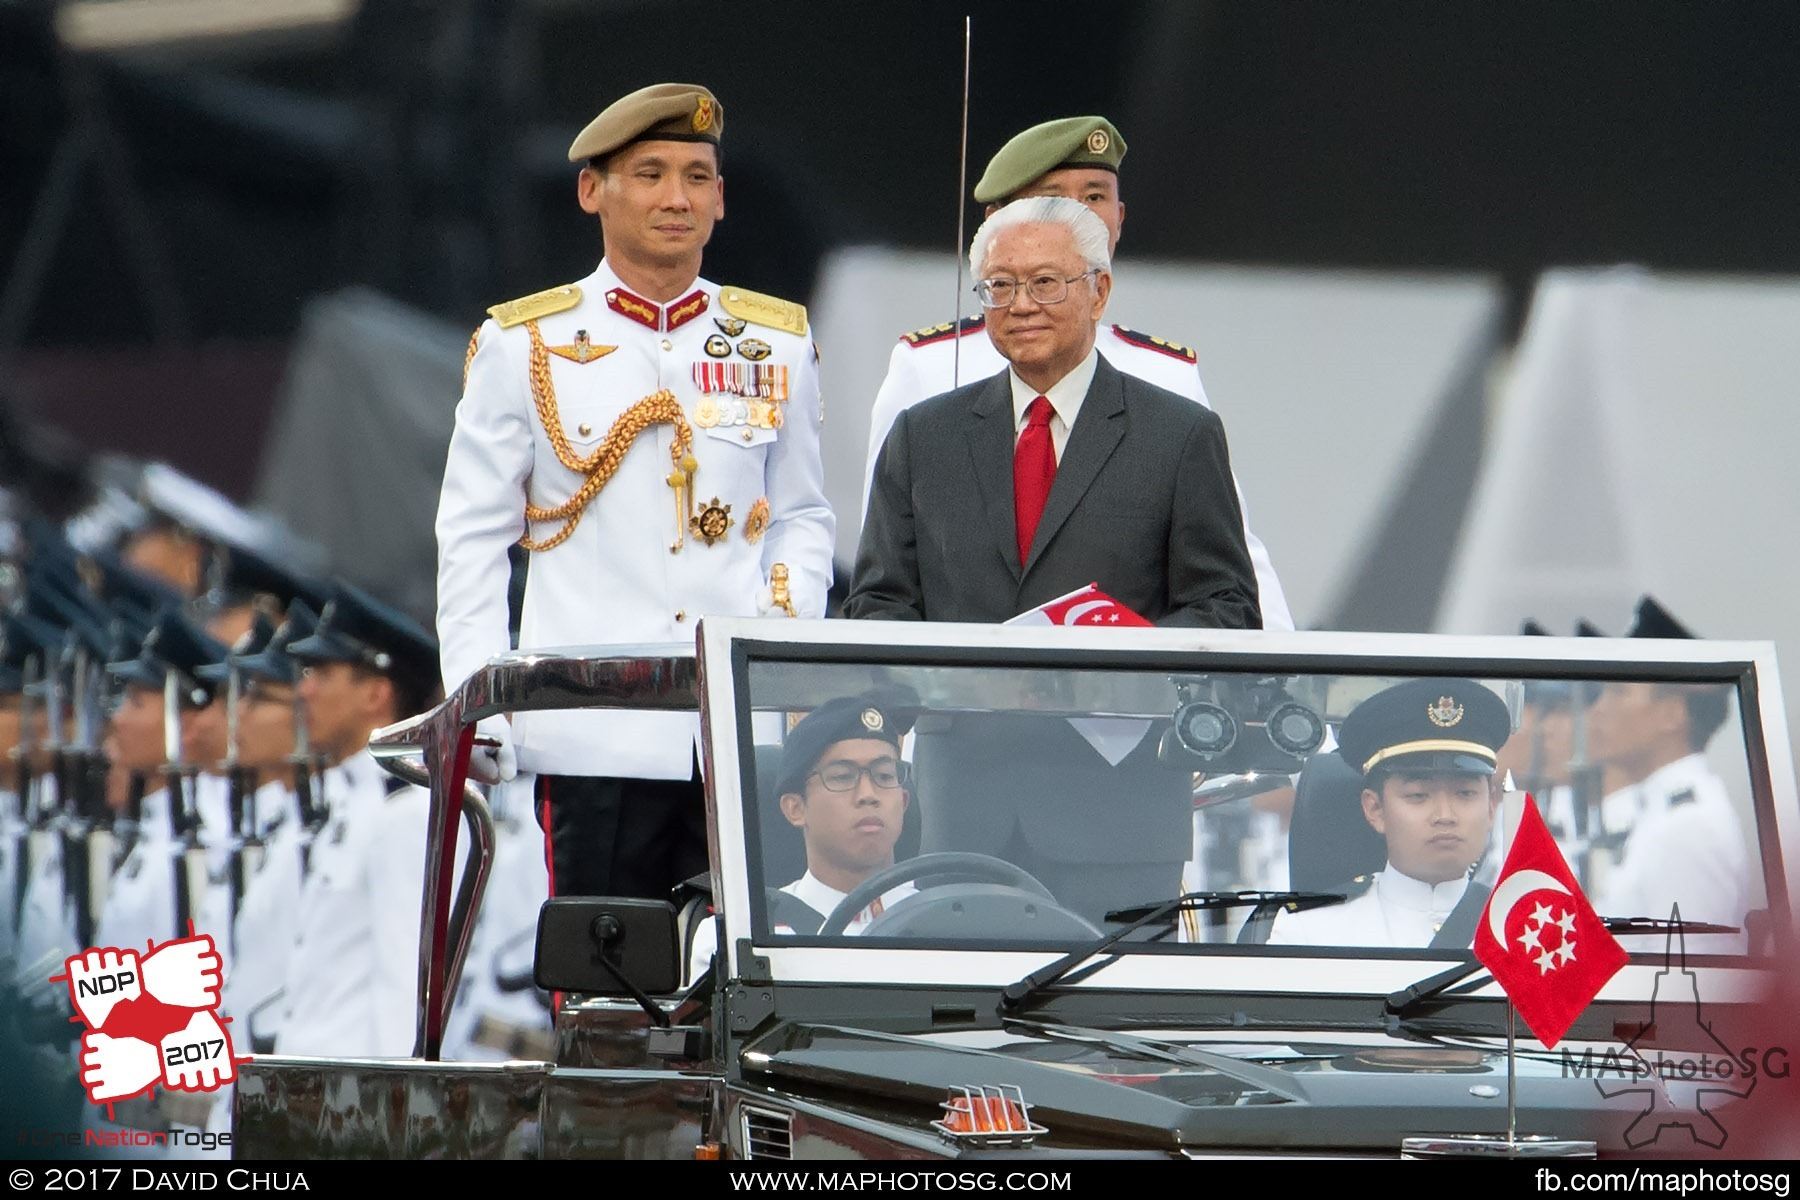 27. President Tony Tan Keng Yam and Chief of Defence Force LG Perry Lim.